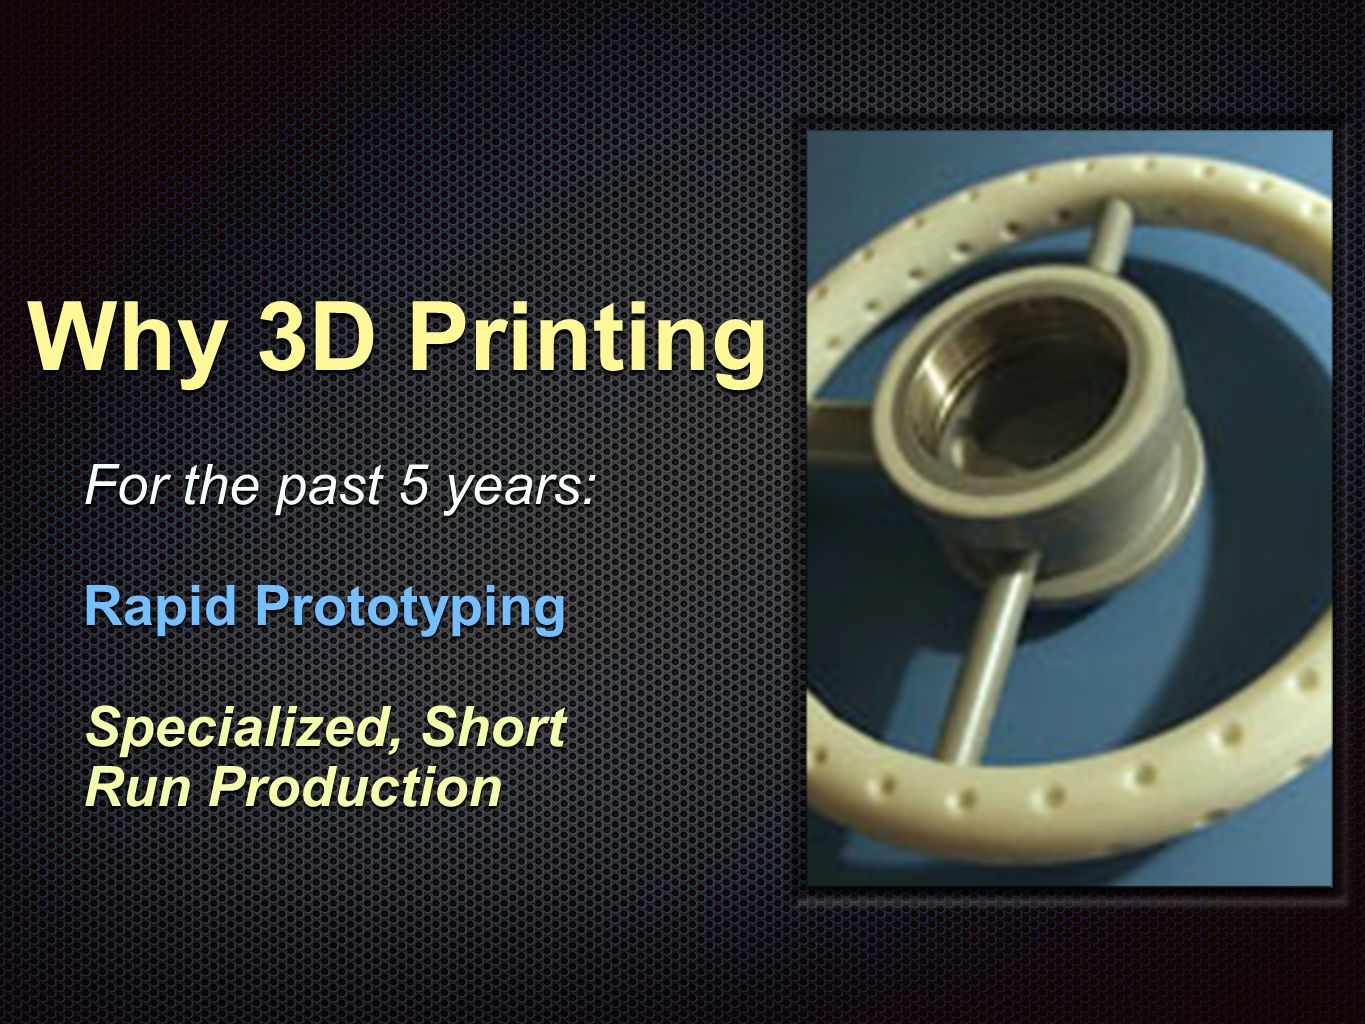 Why 3D Printing Now 2013-2014 & beyond: Rapid Prototyping, specialized, Short Run Production and high value production and fixtures, jigs & molds